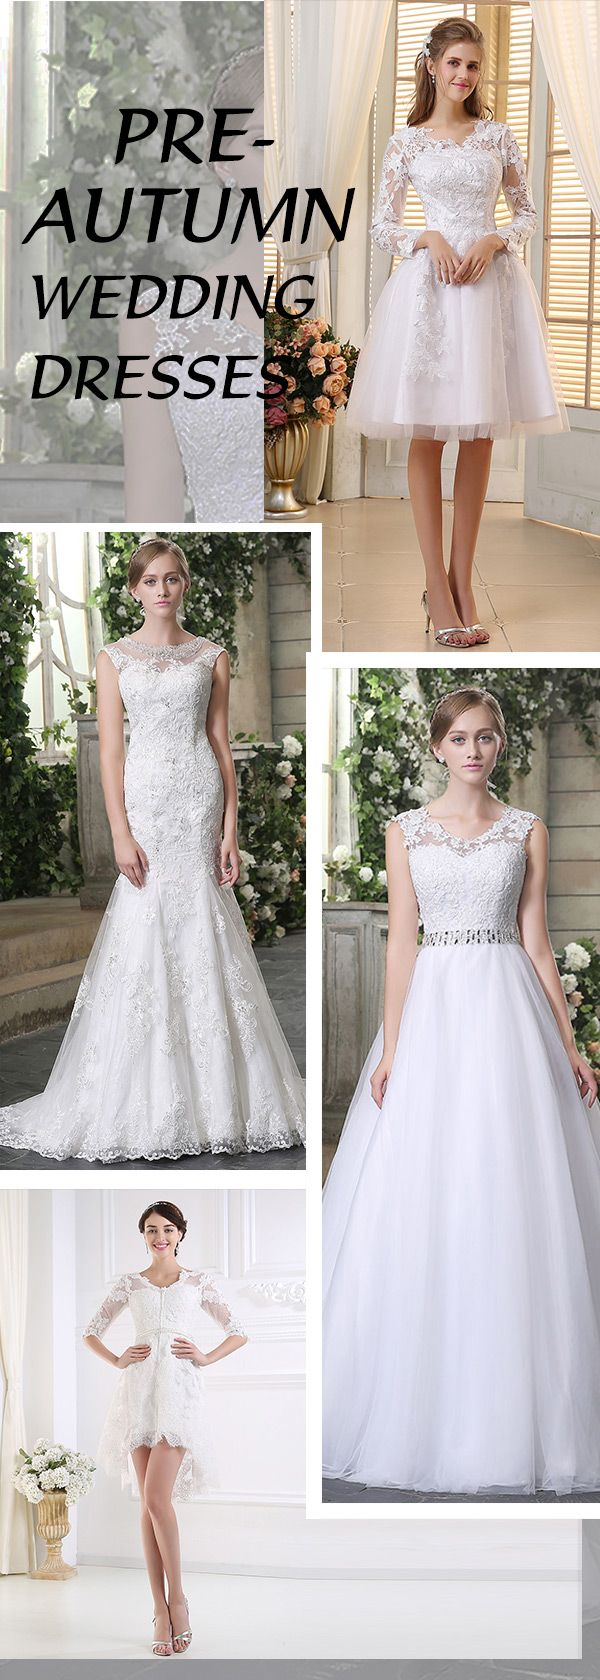 Best wedding gown for a preautumn wedding are bridal gown with